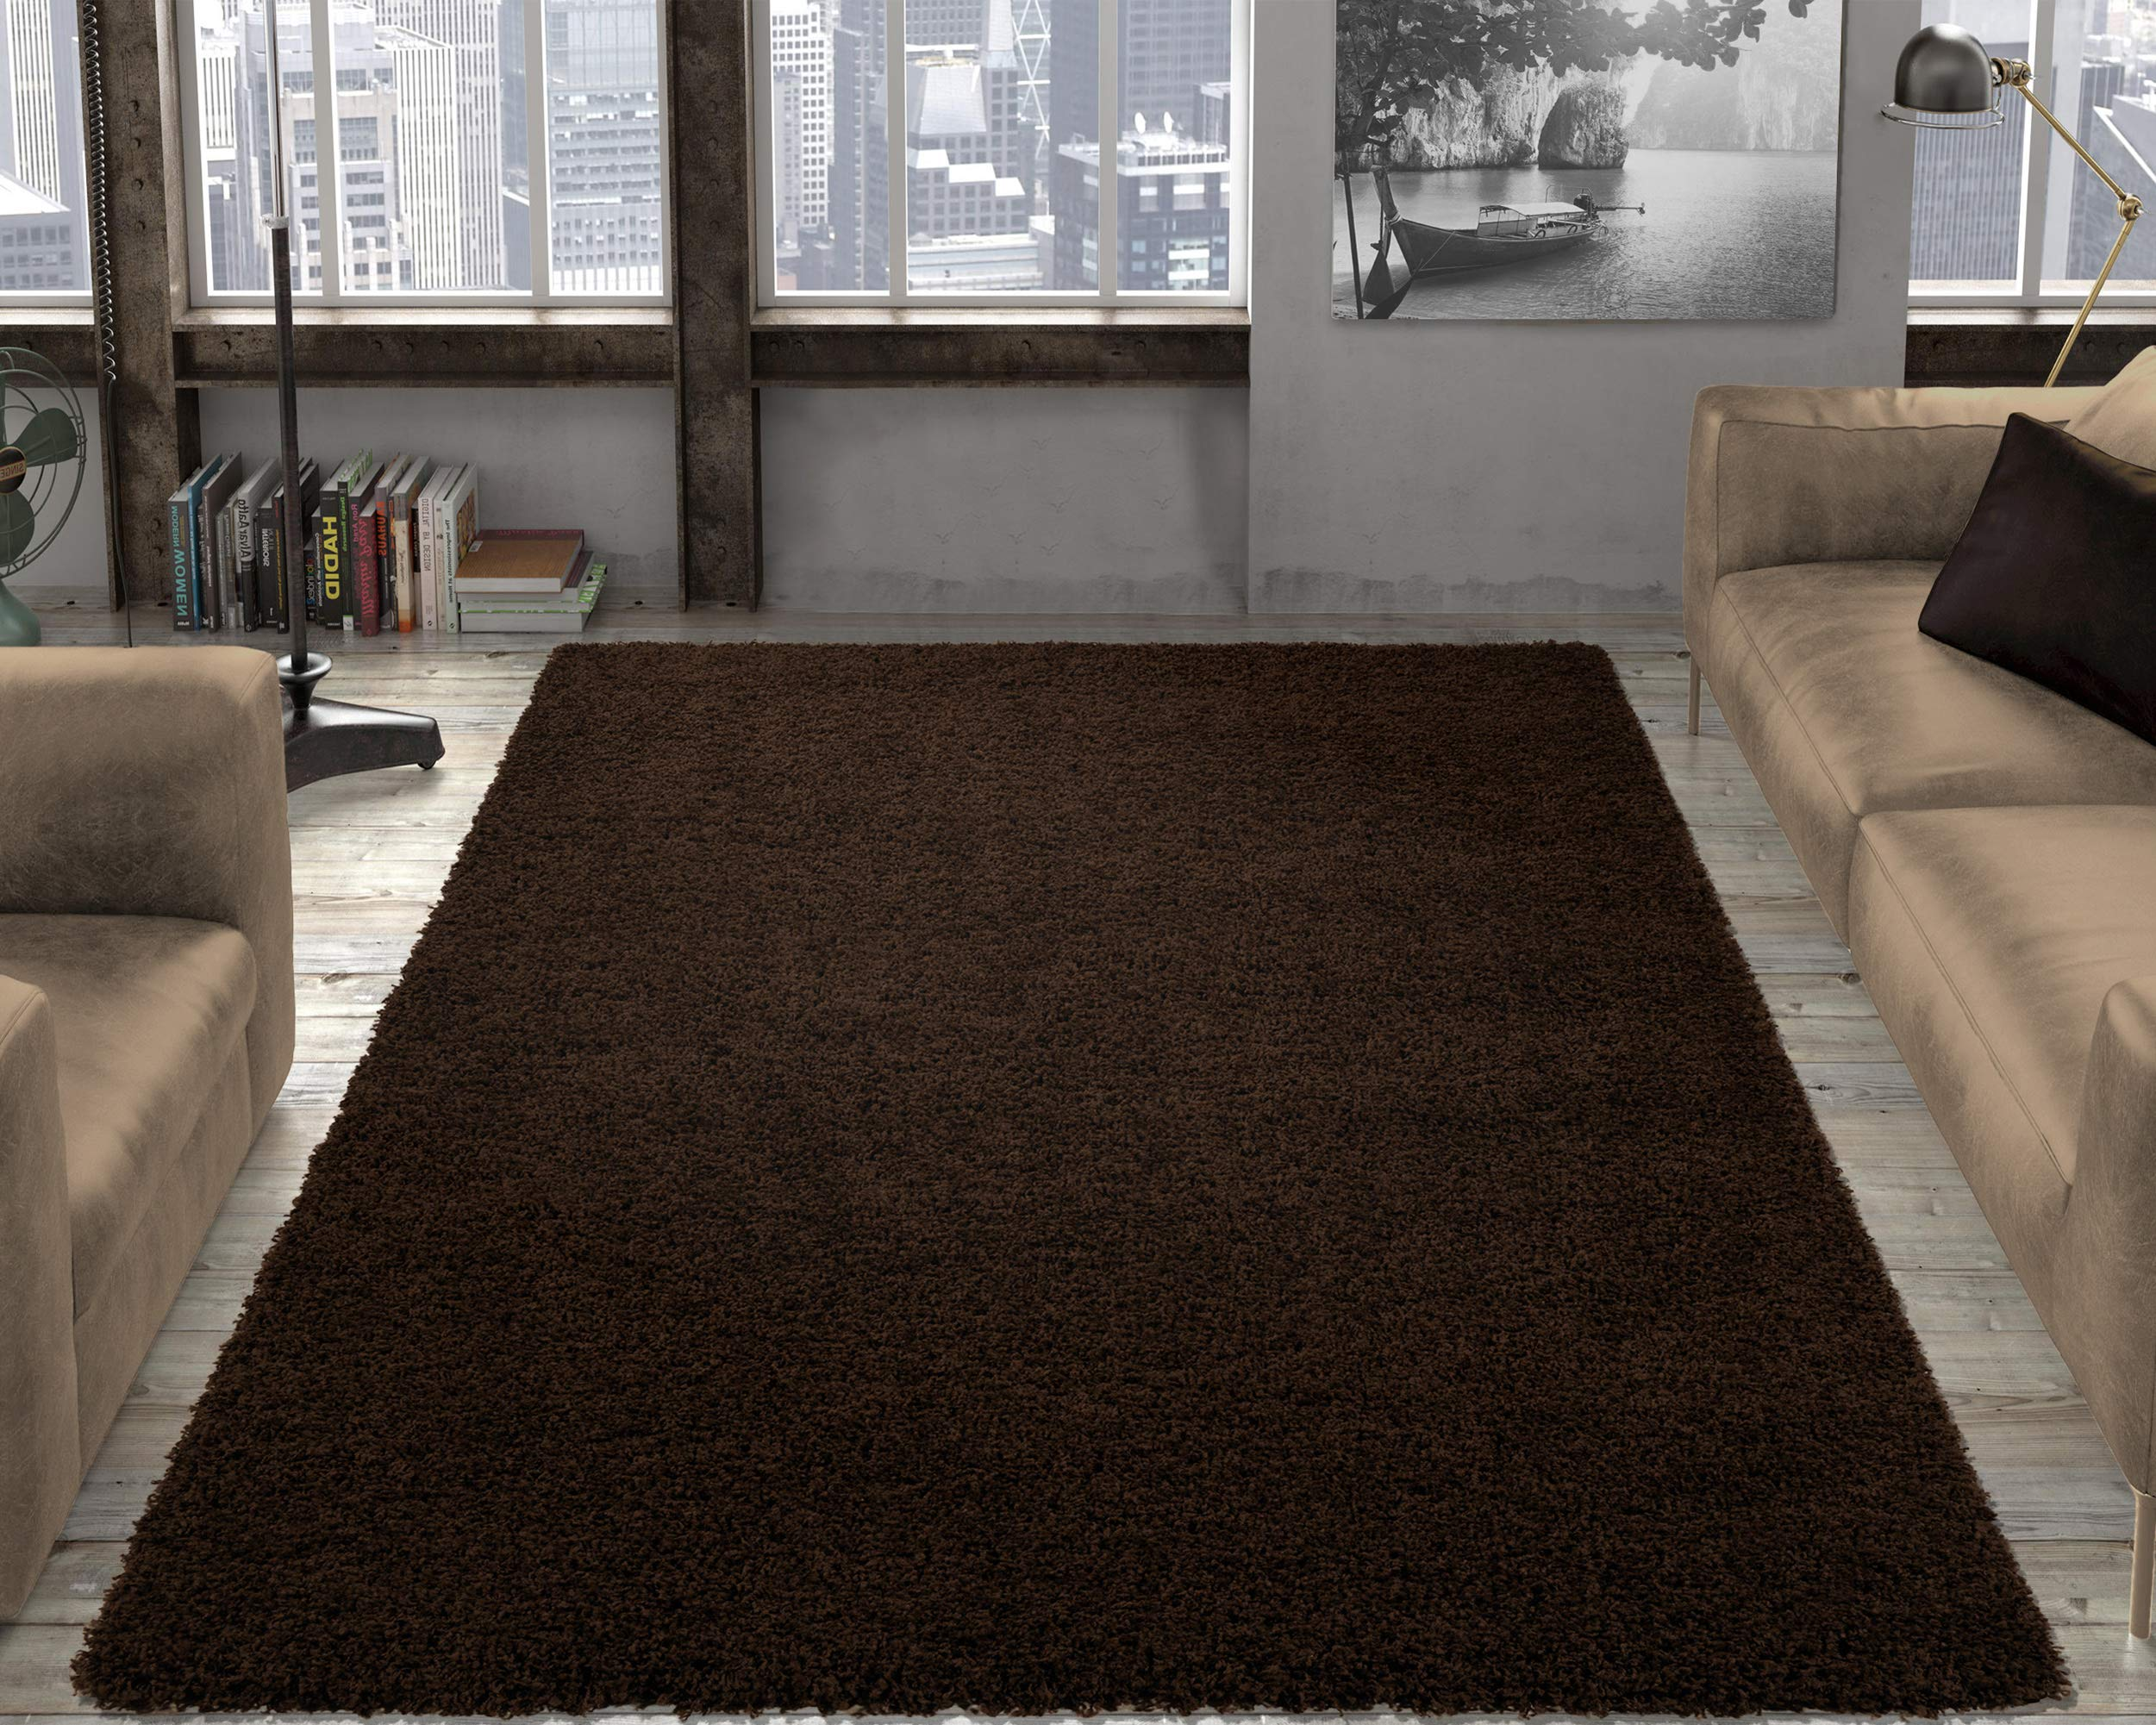 Ottomanson shag Collection Area Rug, 6'7'' x 9'3'', Brown by Ottomanson